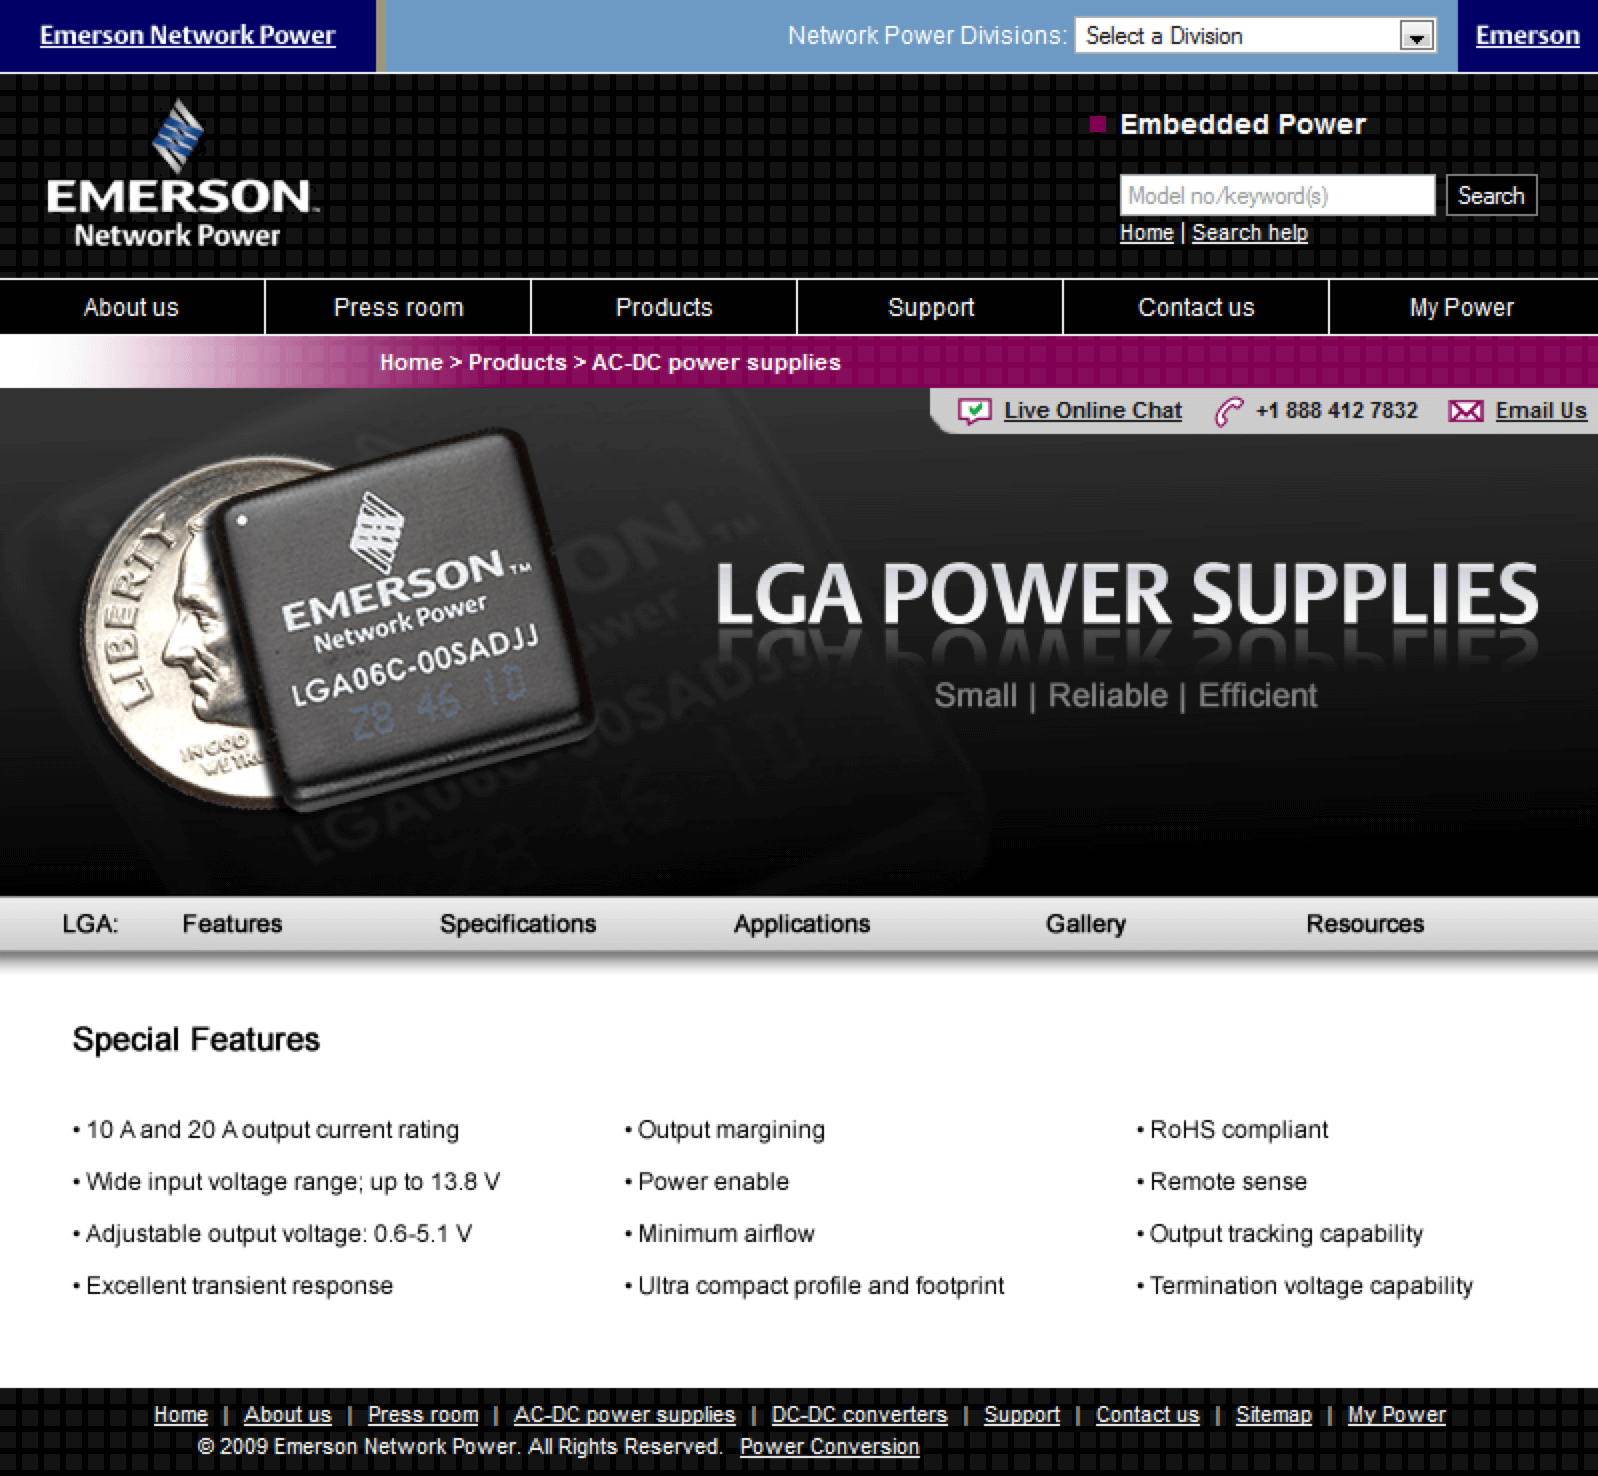 Emerson-LGA-Power-Supplies-Website-Design-Conference-Roadshow-Features